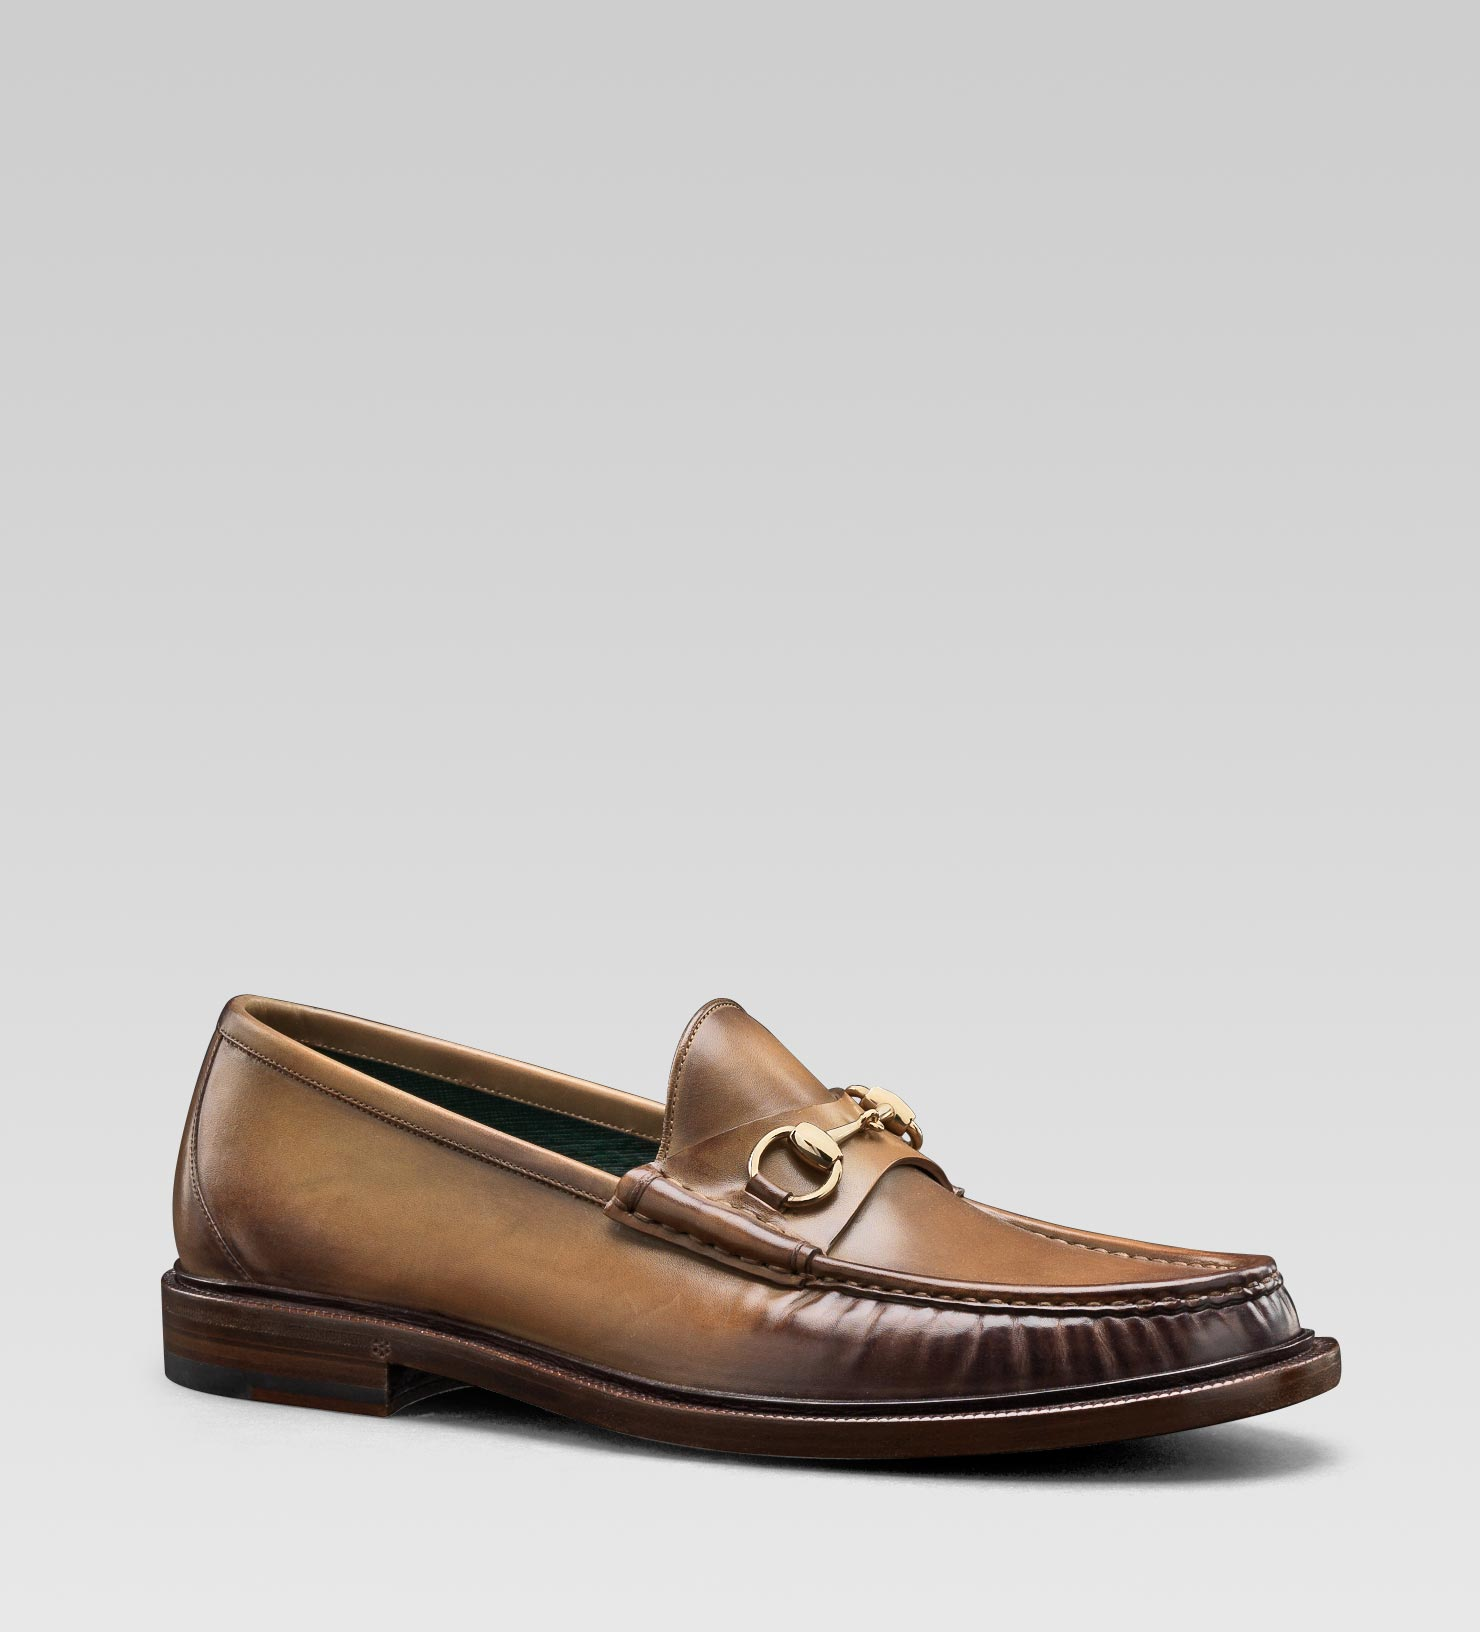 0751aac18cb Lyst - Gucci Mens Horsebit Moccasin in Khaki Hand Shaded Leather ...